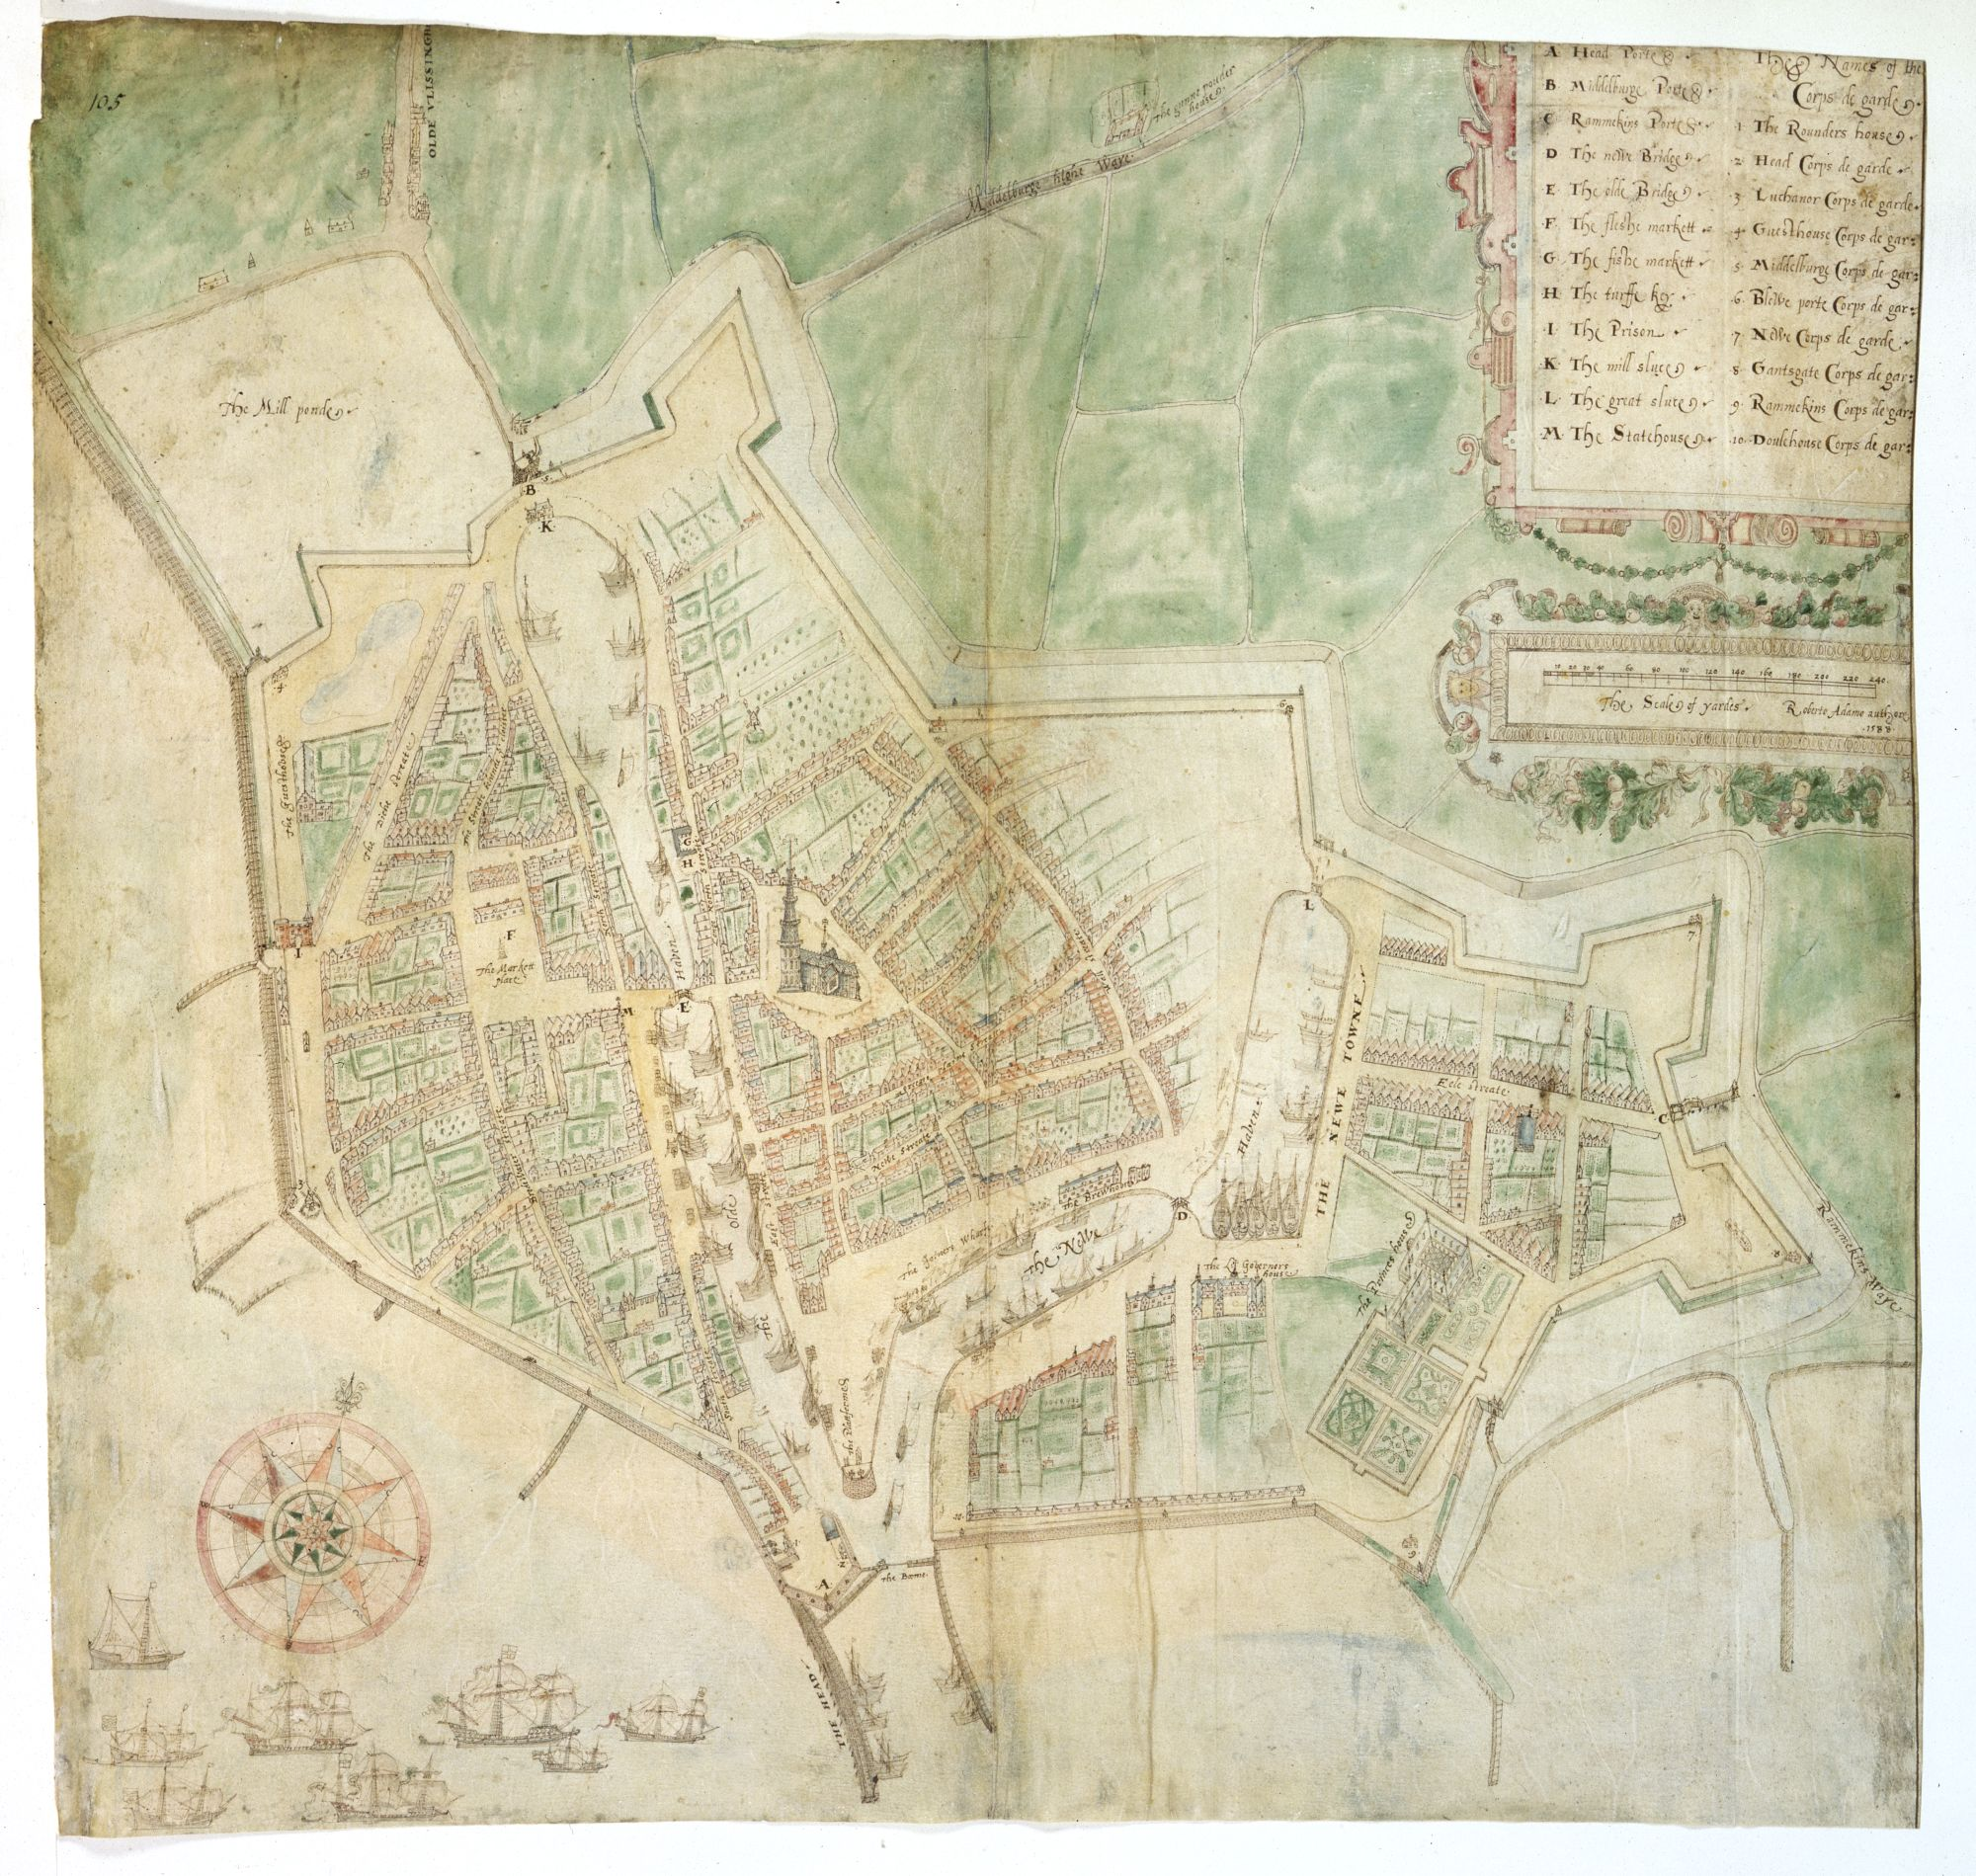 Robert Adams, Plan of Flushing (Vlissingen), 1588. Cotton MS Augustus I.ii.105.